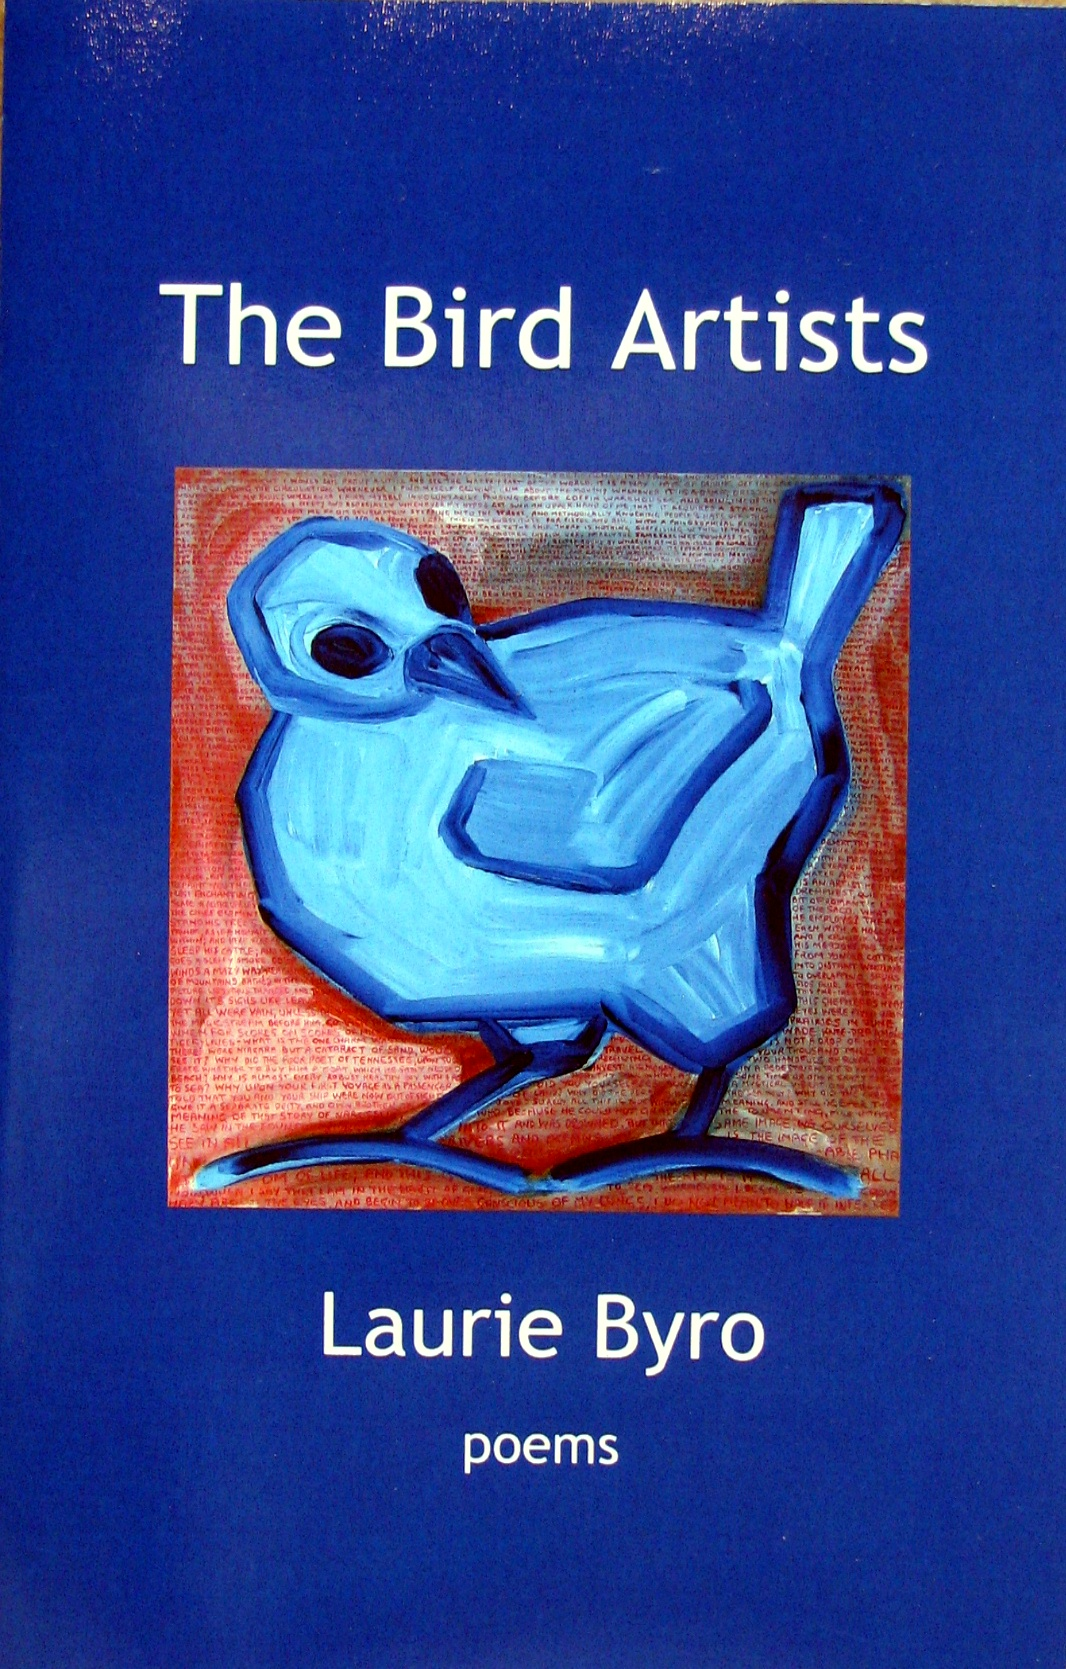 The Bird Artists by Laurie Byro